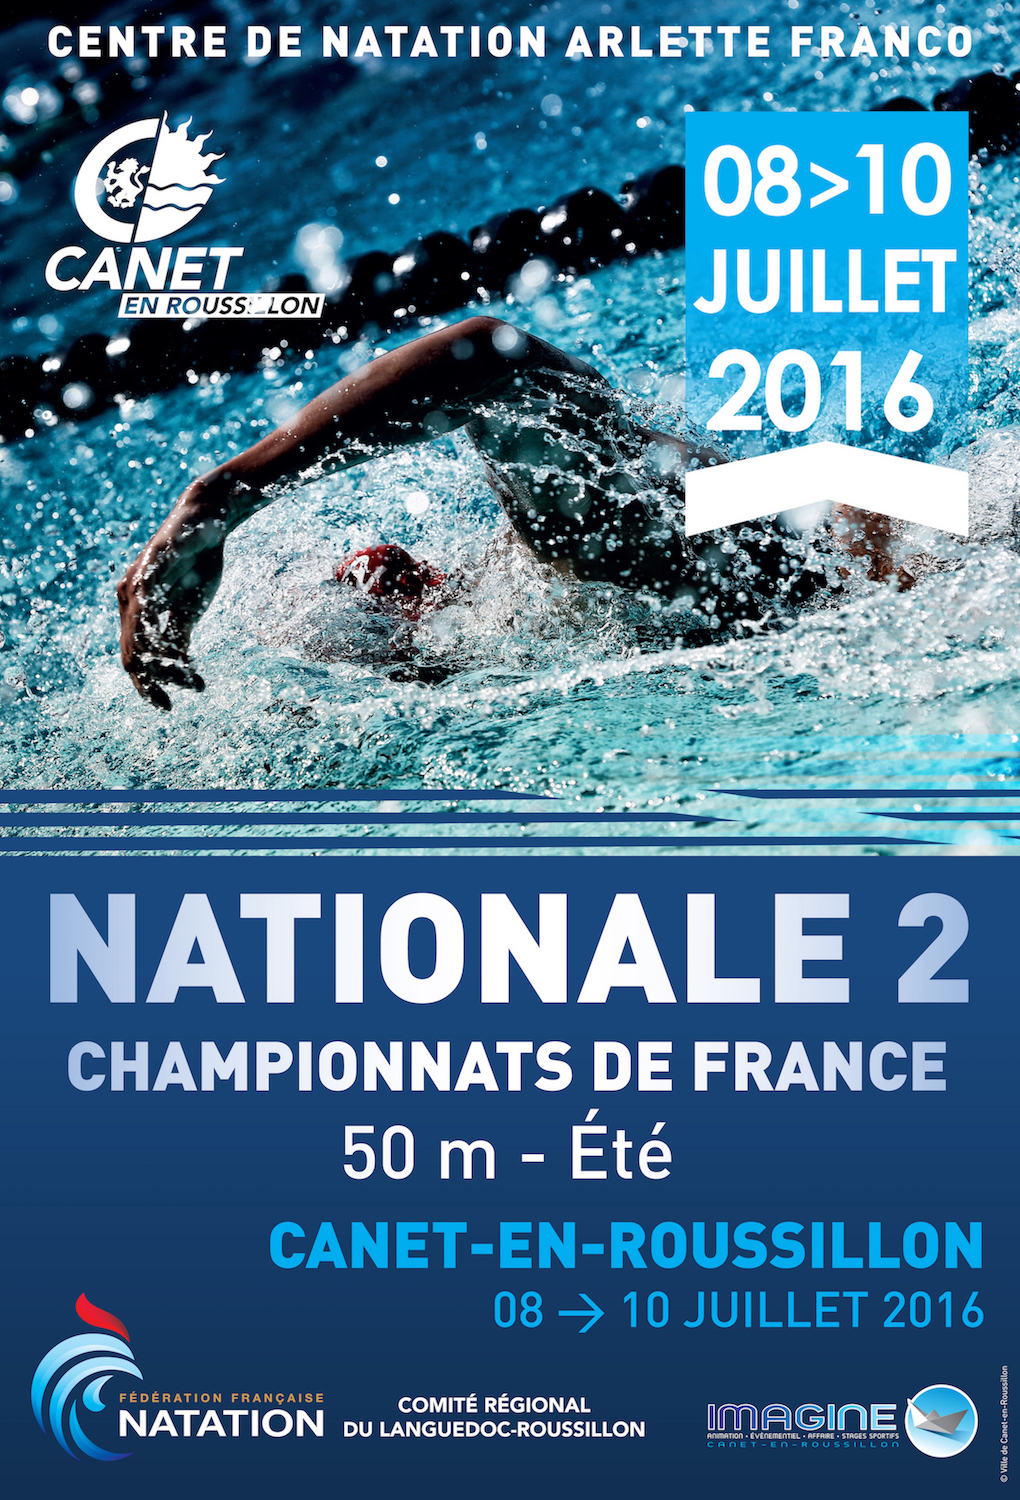 Championnats de france nationale 2 canet en roussillon - Office du tourisme canet en roussillon ...